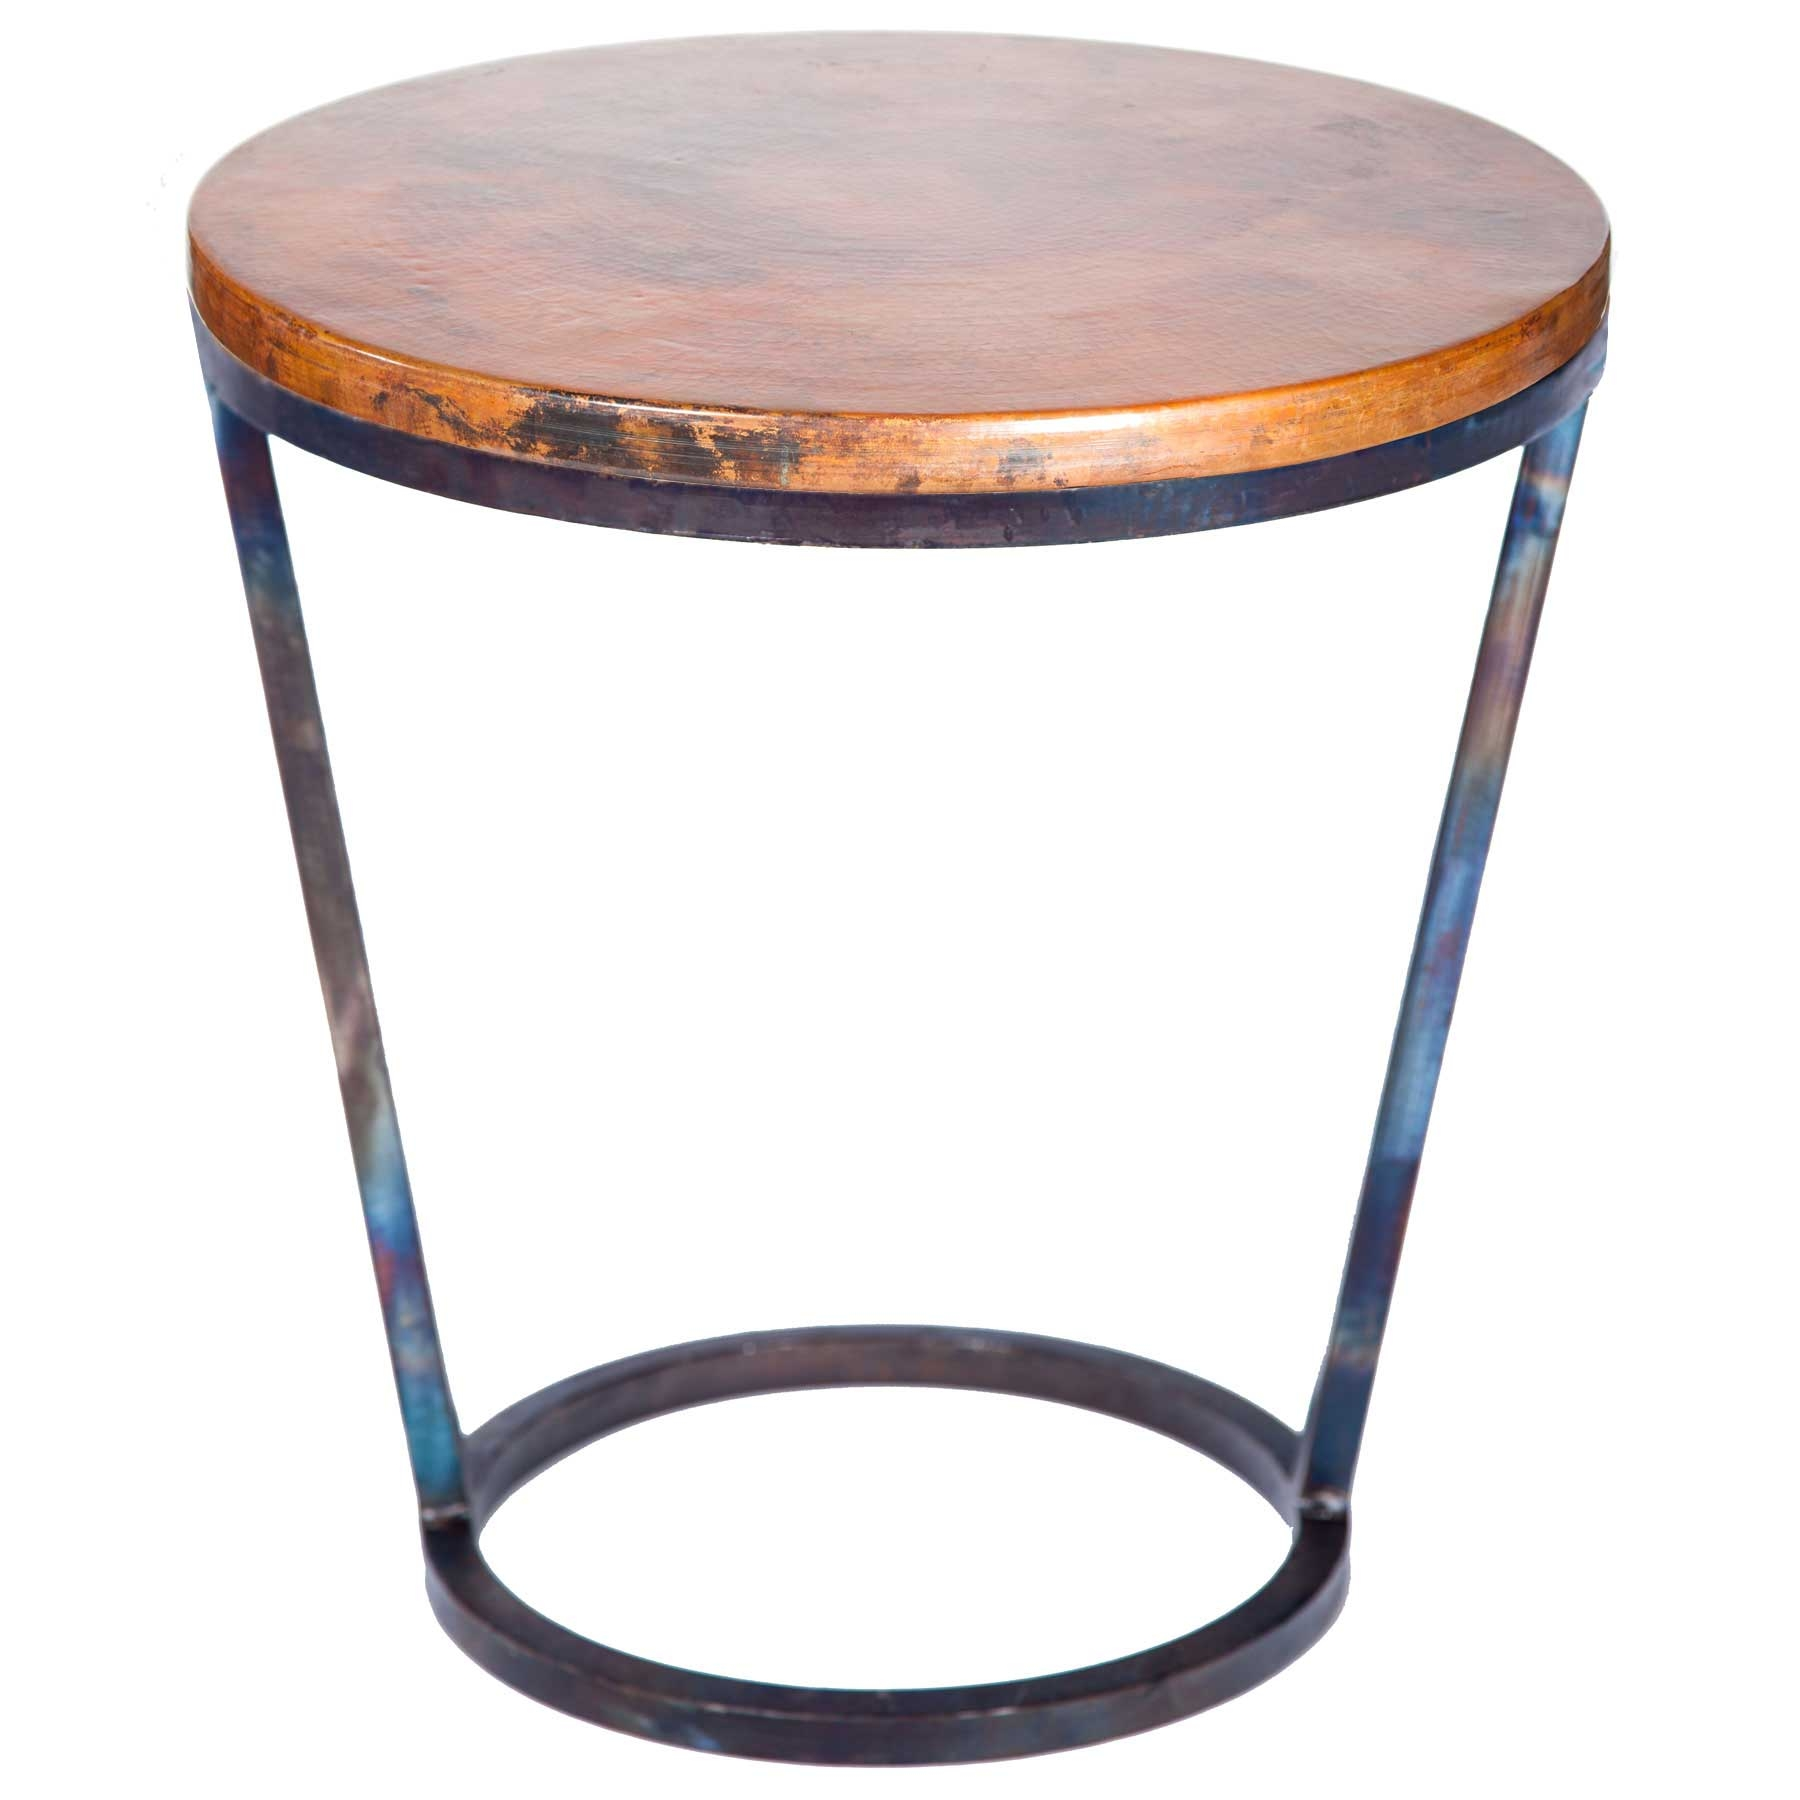 ayres iron accent table with hammered copper top twi metal wrought base and larger tall outdoor side wood end plans crate pier diy sliding door chippendale chairs black wine rack